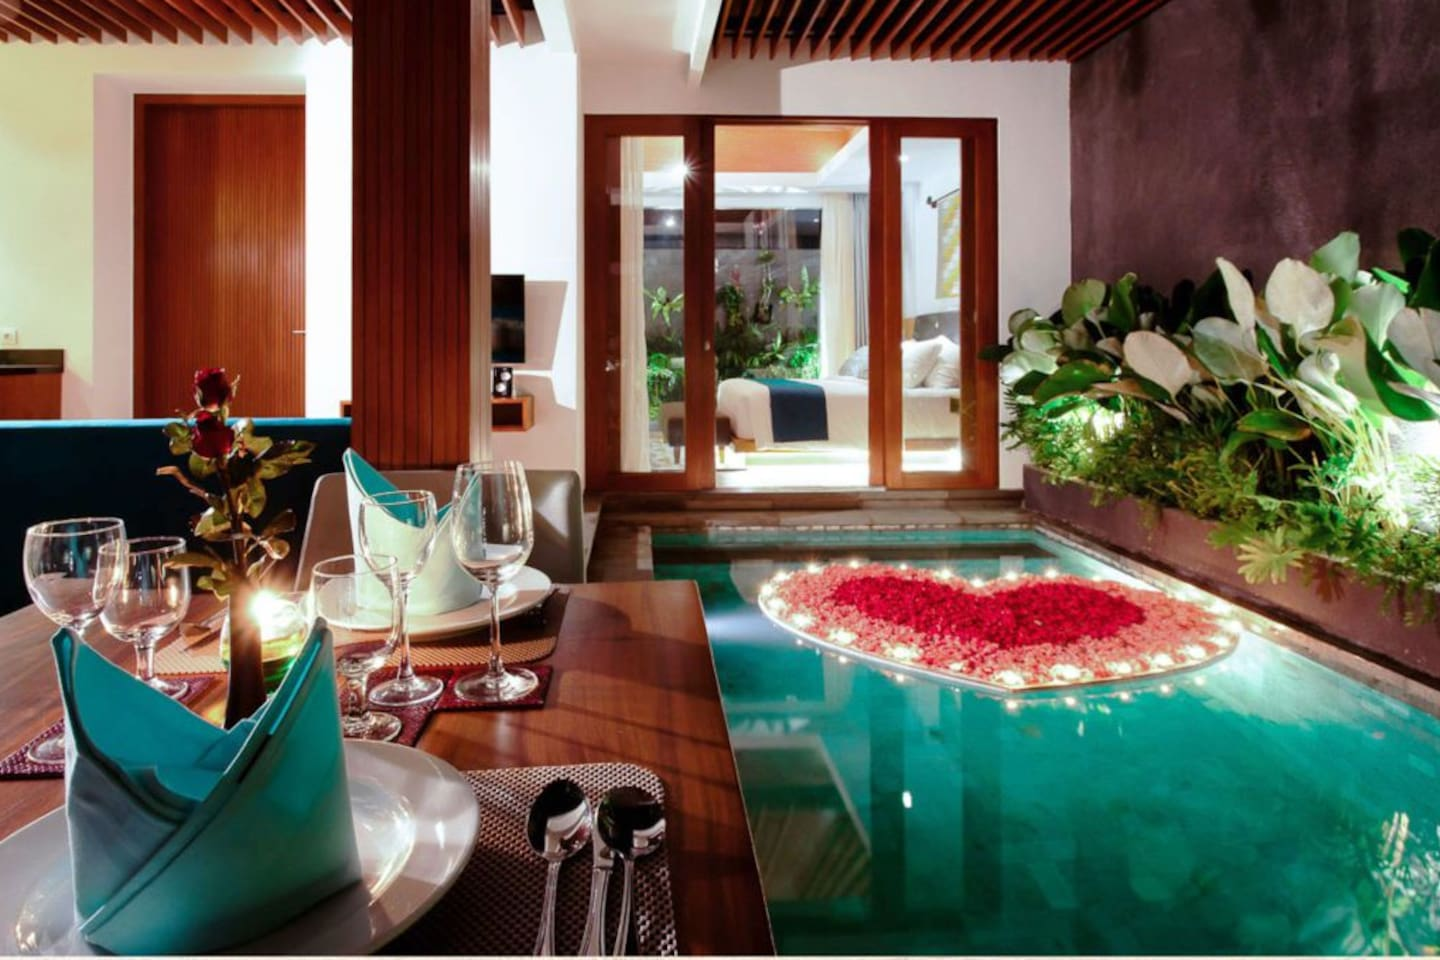 Romantic dinner setup with floating love at pool